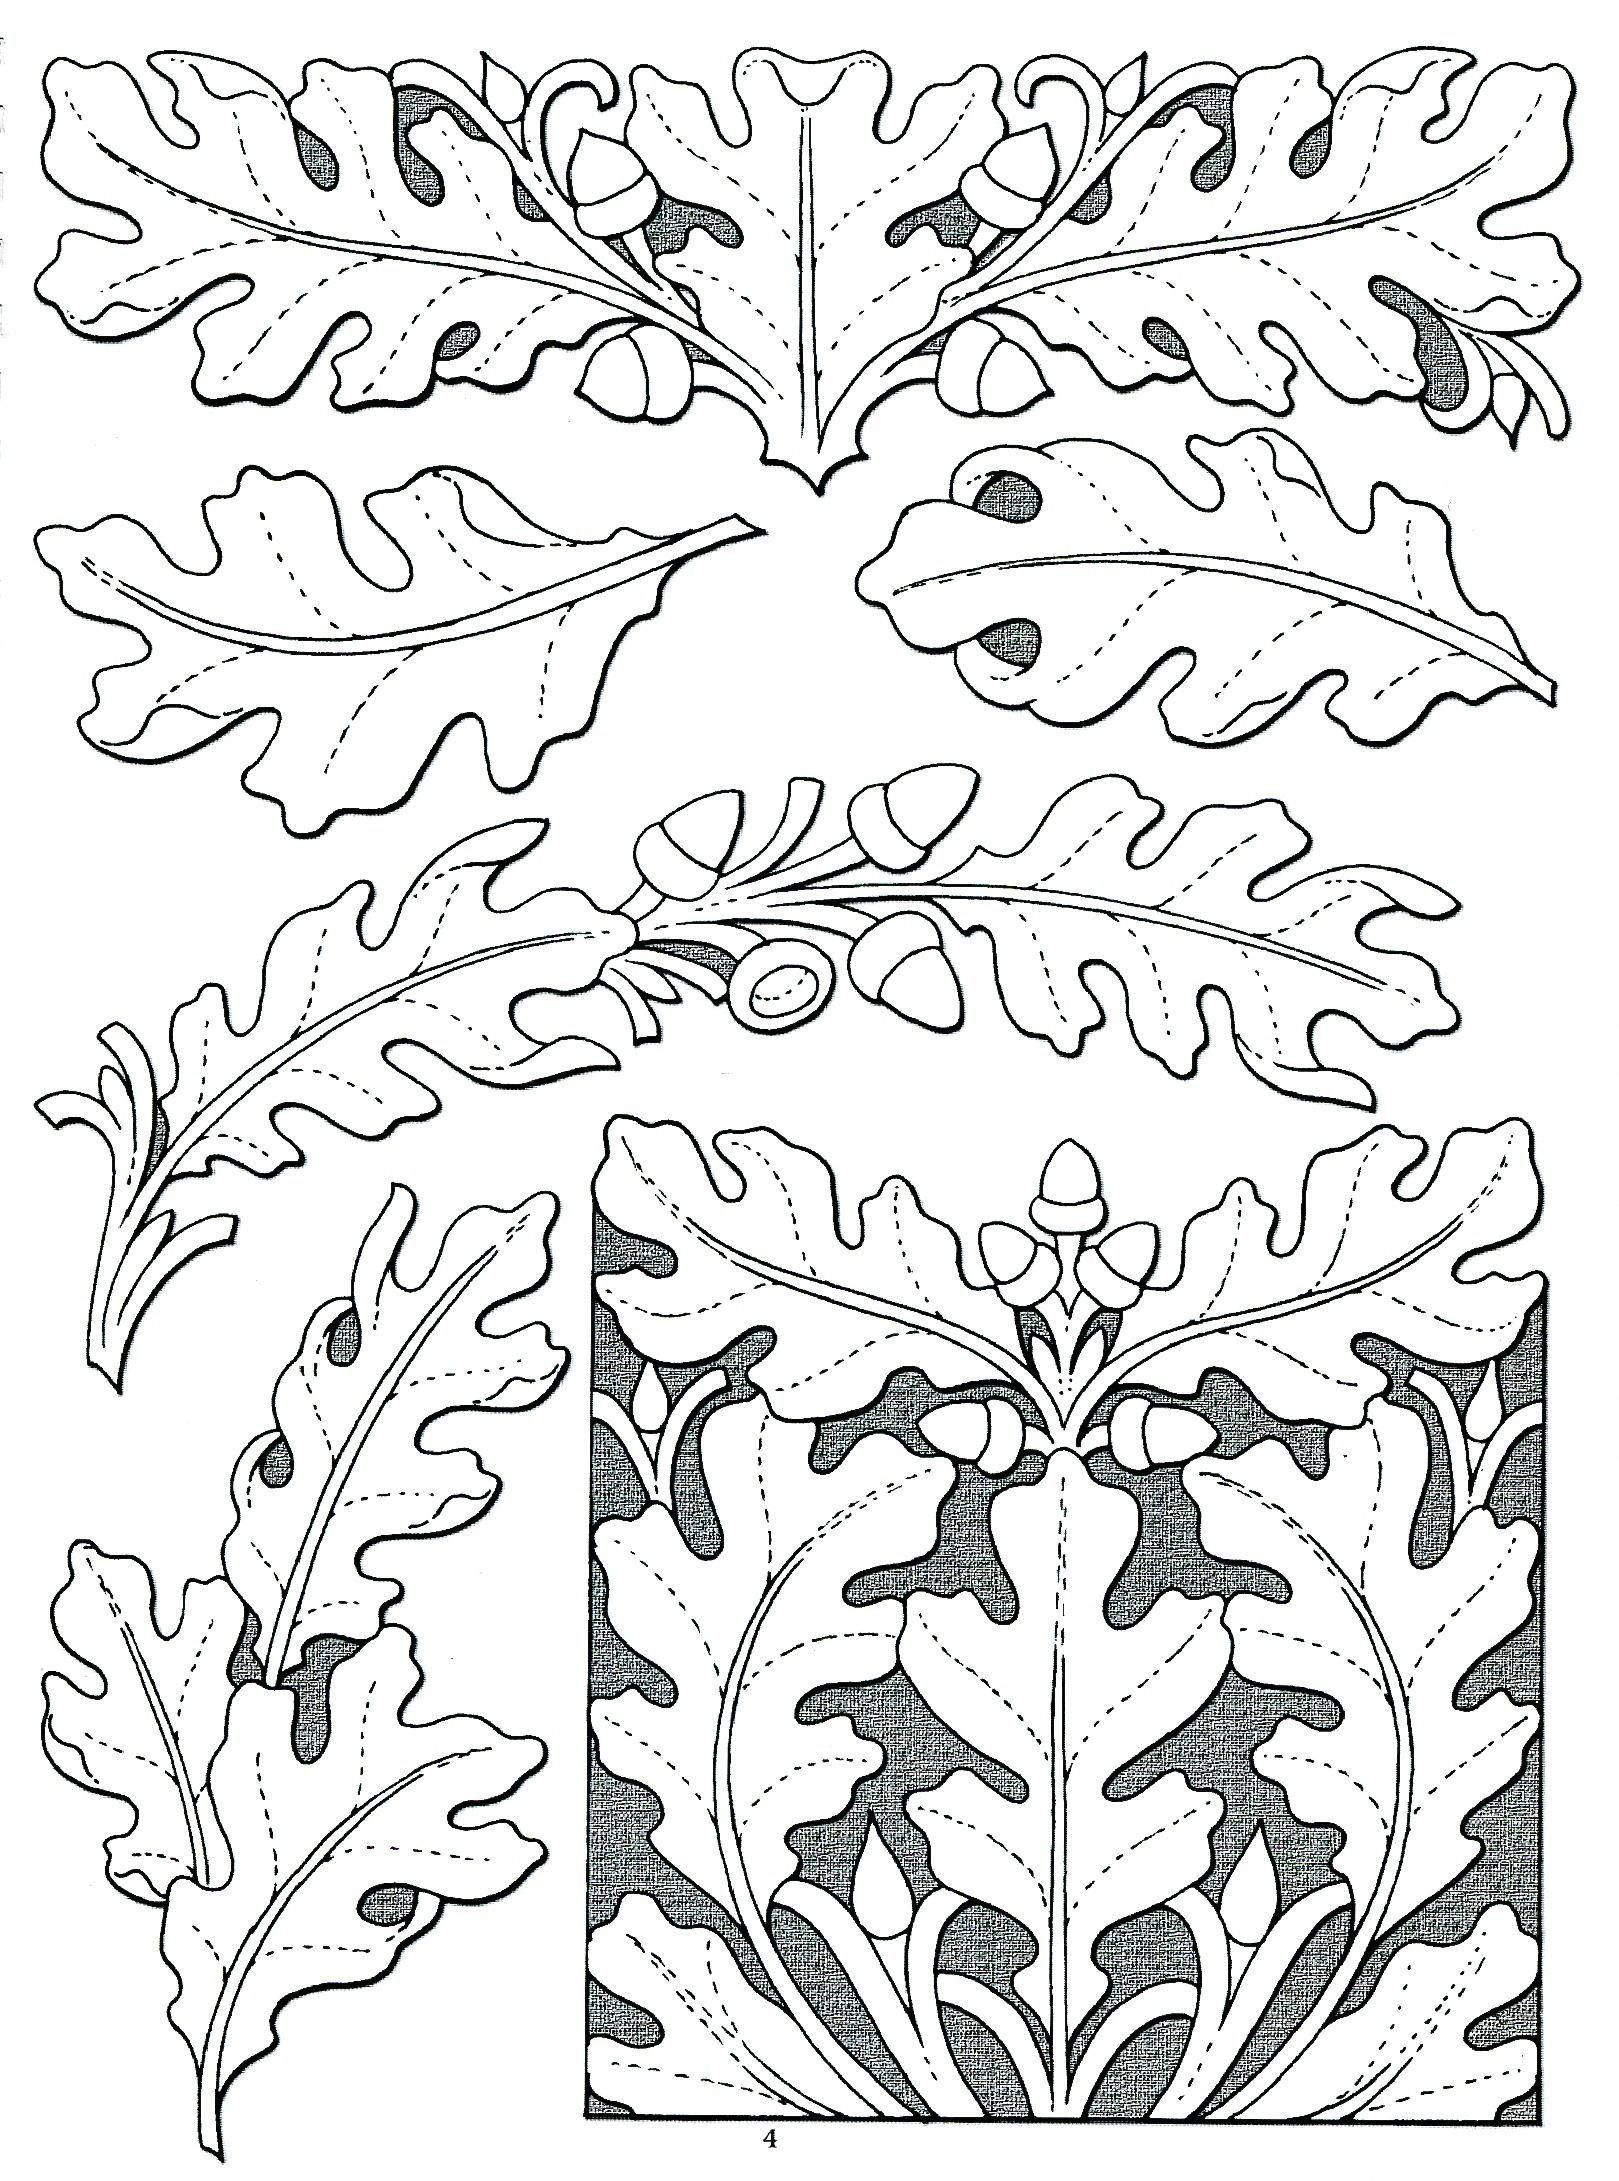 photograph about Free Printable Leather Tooling Patterns named Inspirational No cost Printable Leather-based tooling Types